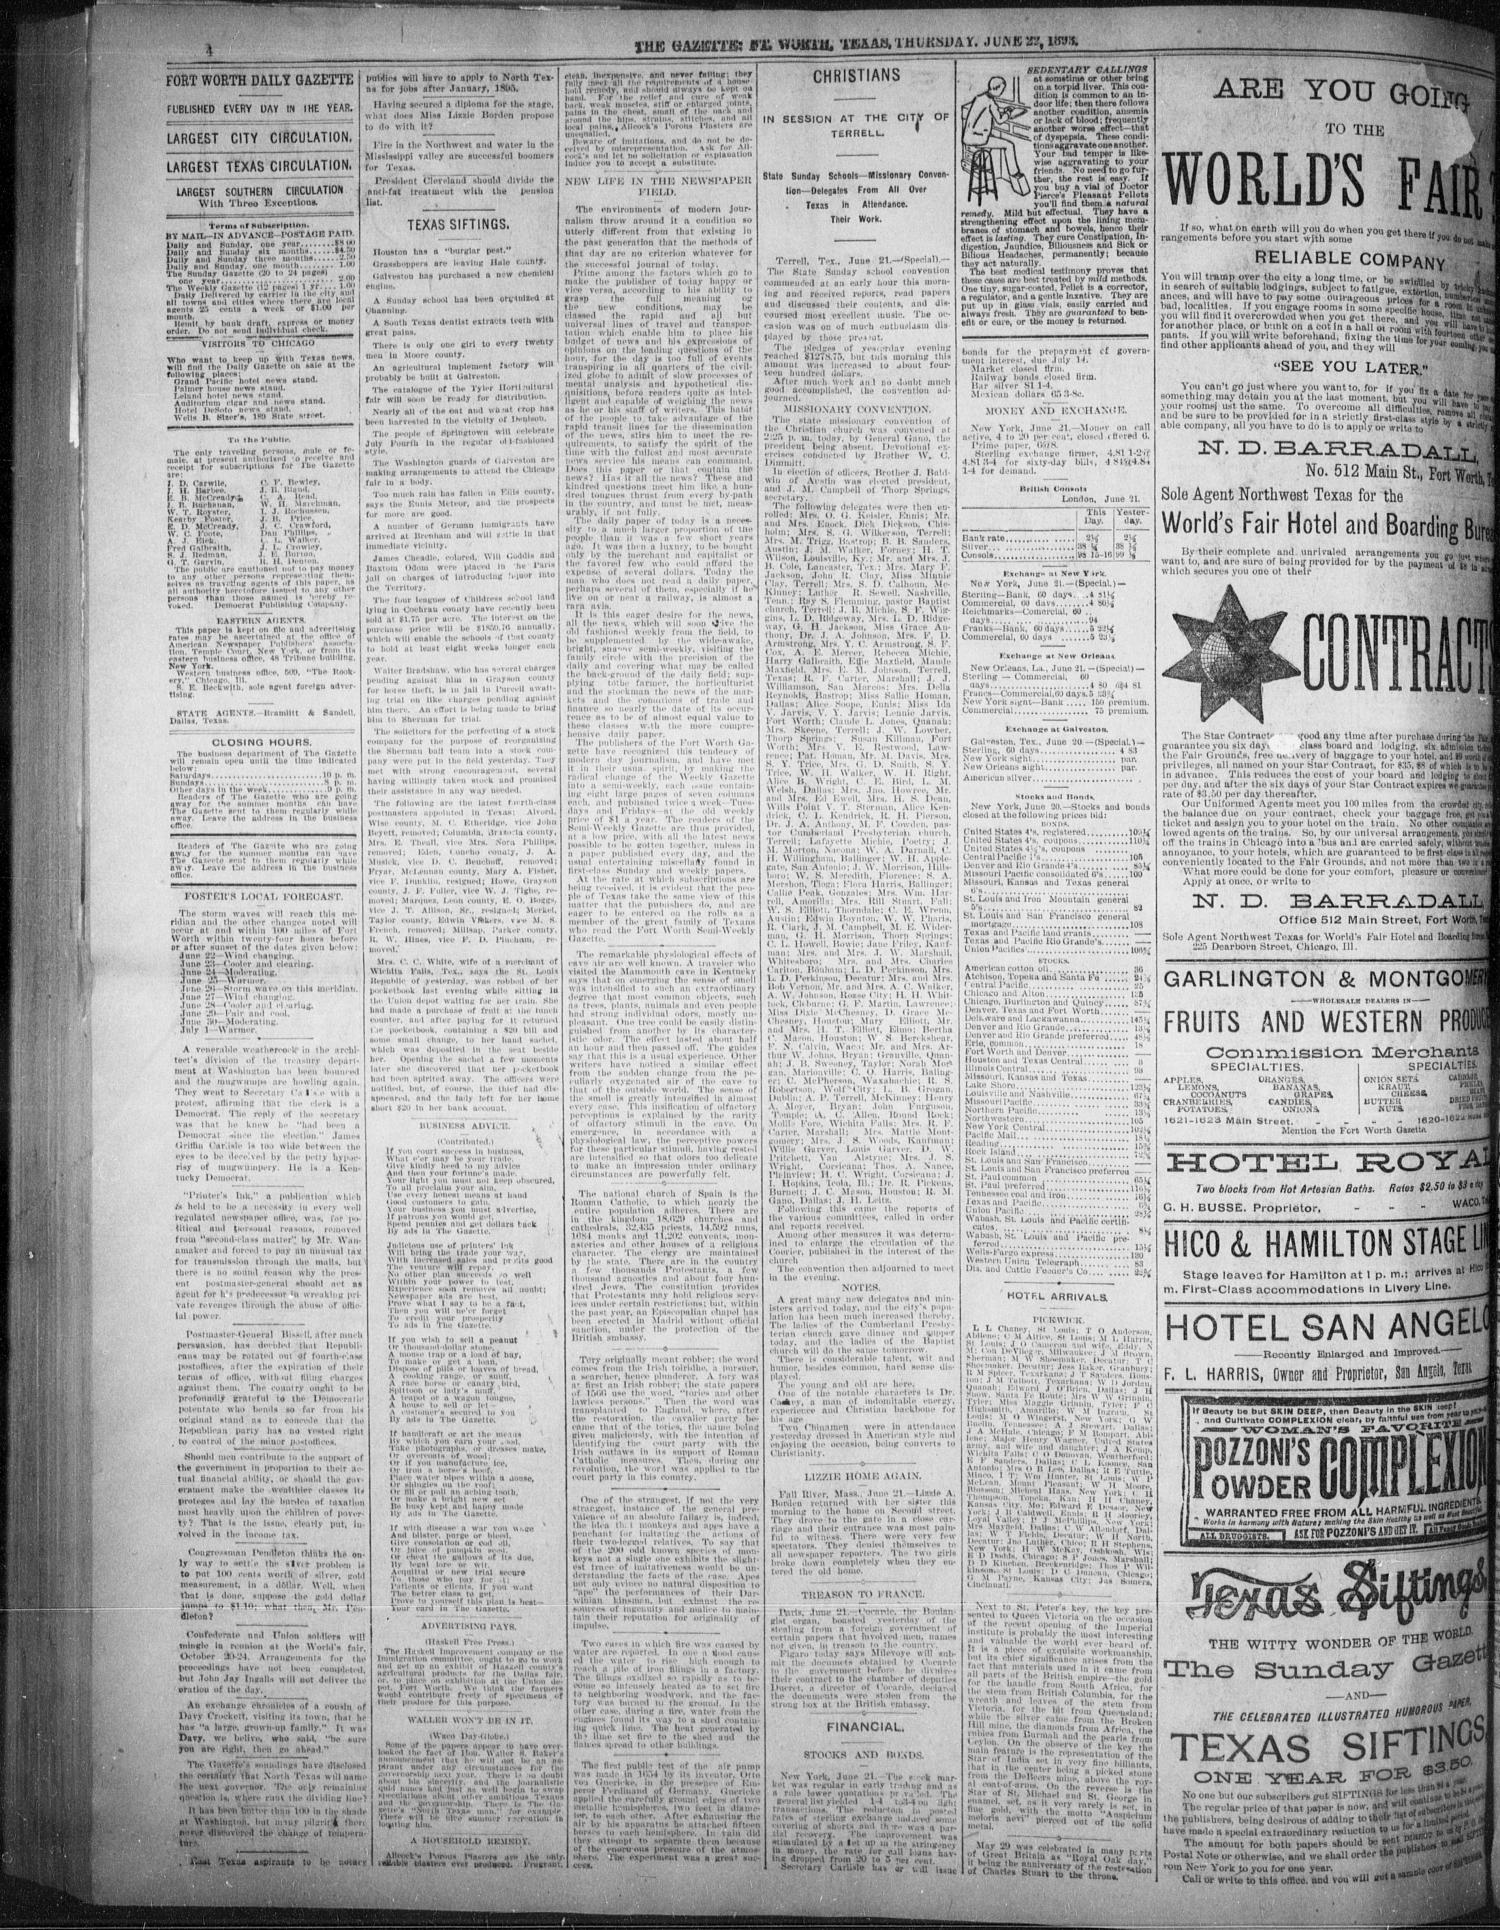 Fort Worth Gazette. (Fort Worth, Tex.), Vol. 17, No. 218, Ed. 1, Thursday,  June 22, 1893 - Page 4 of 8 - The Portal to Texas History